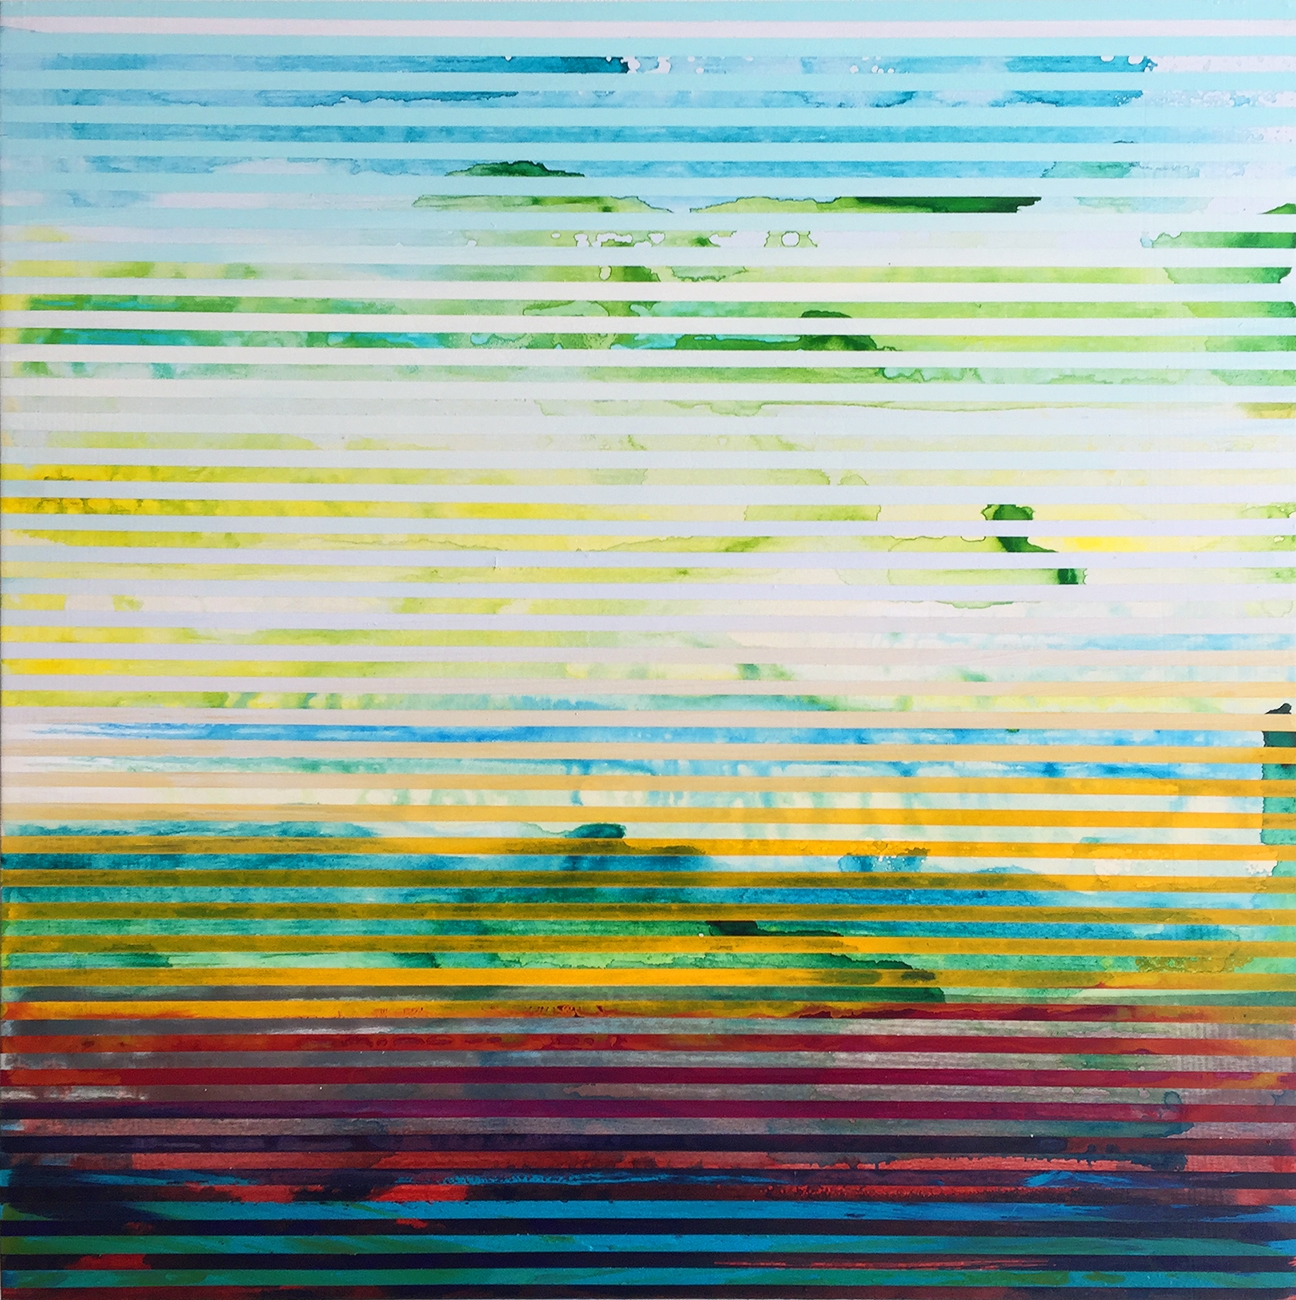 Weaving Landscape (square) 2 by Shawn Skeir